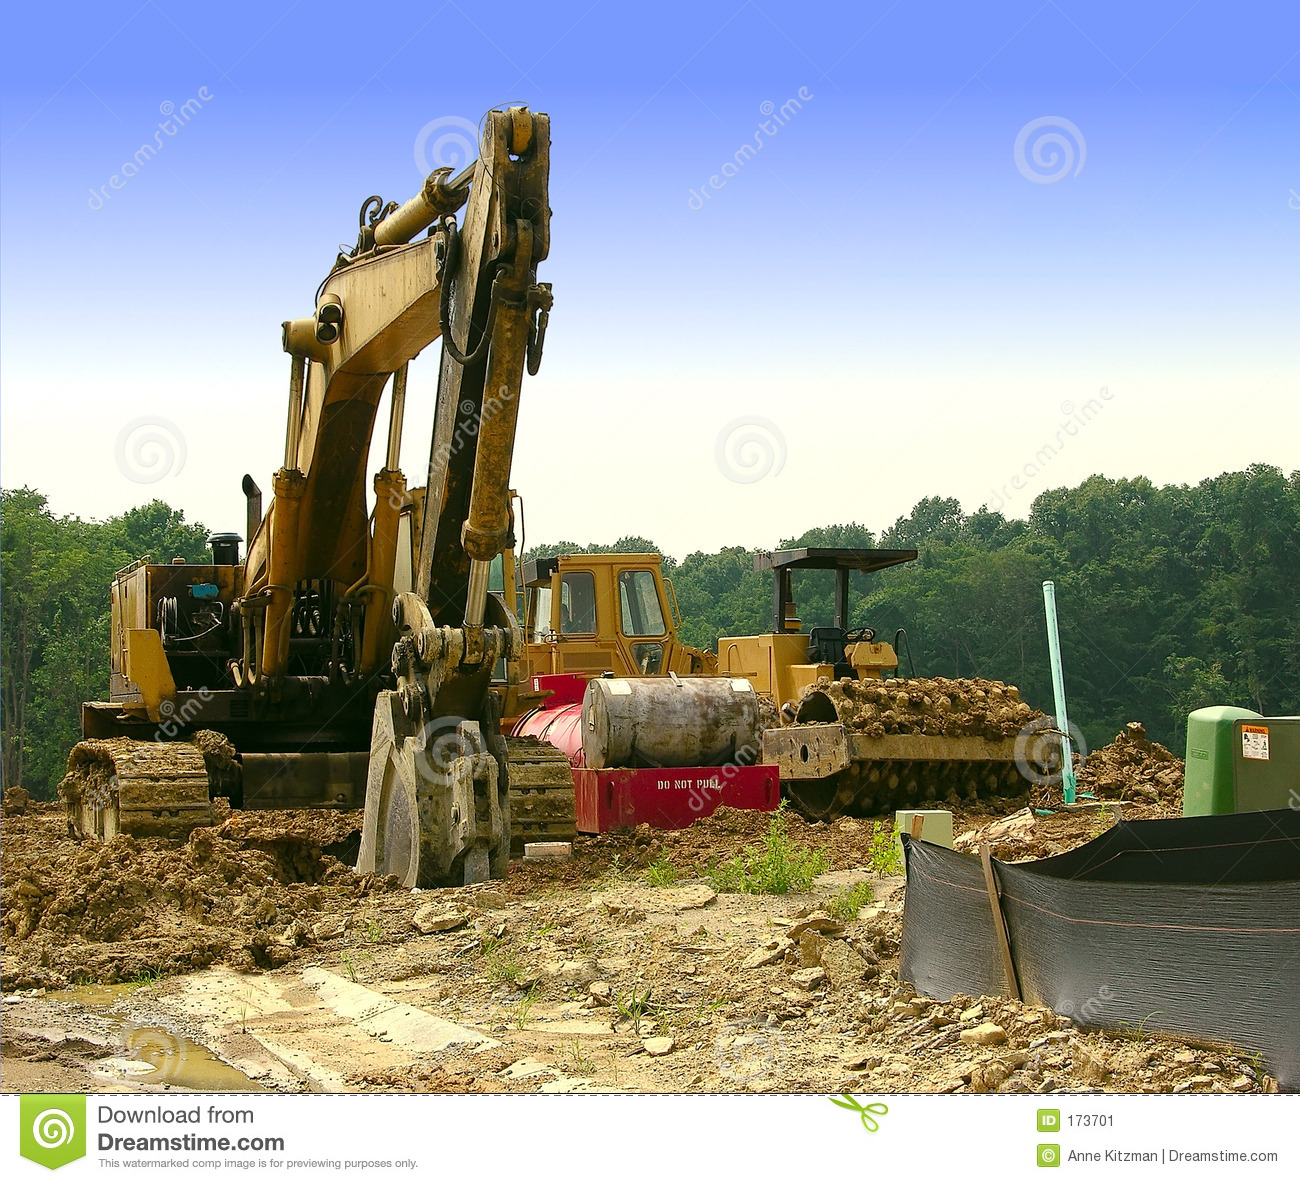 Construction - Heavy equipment